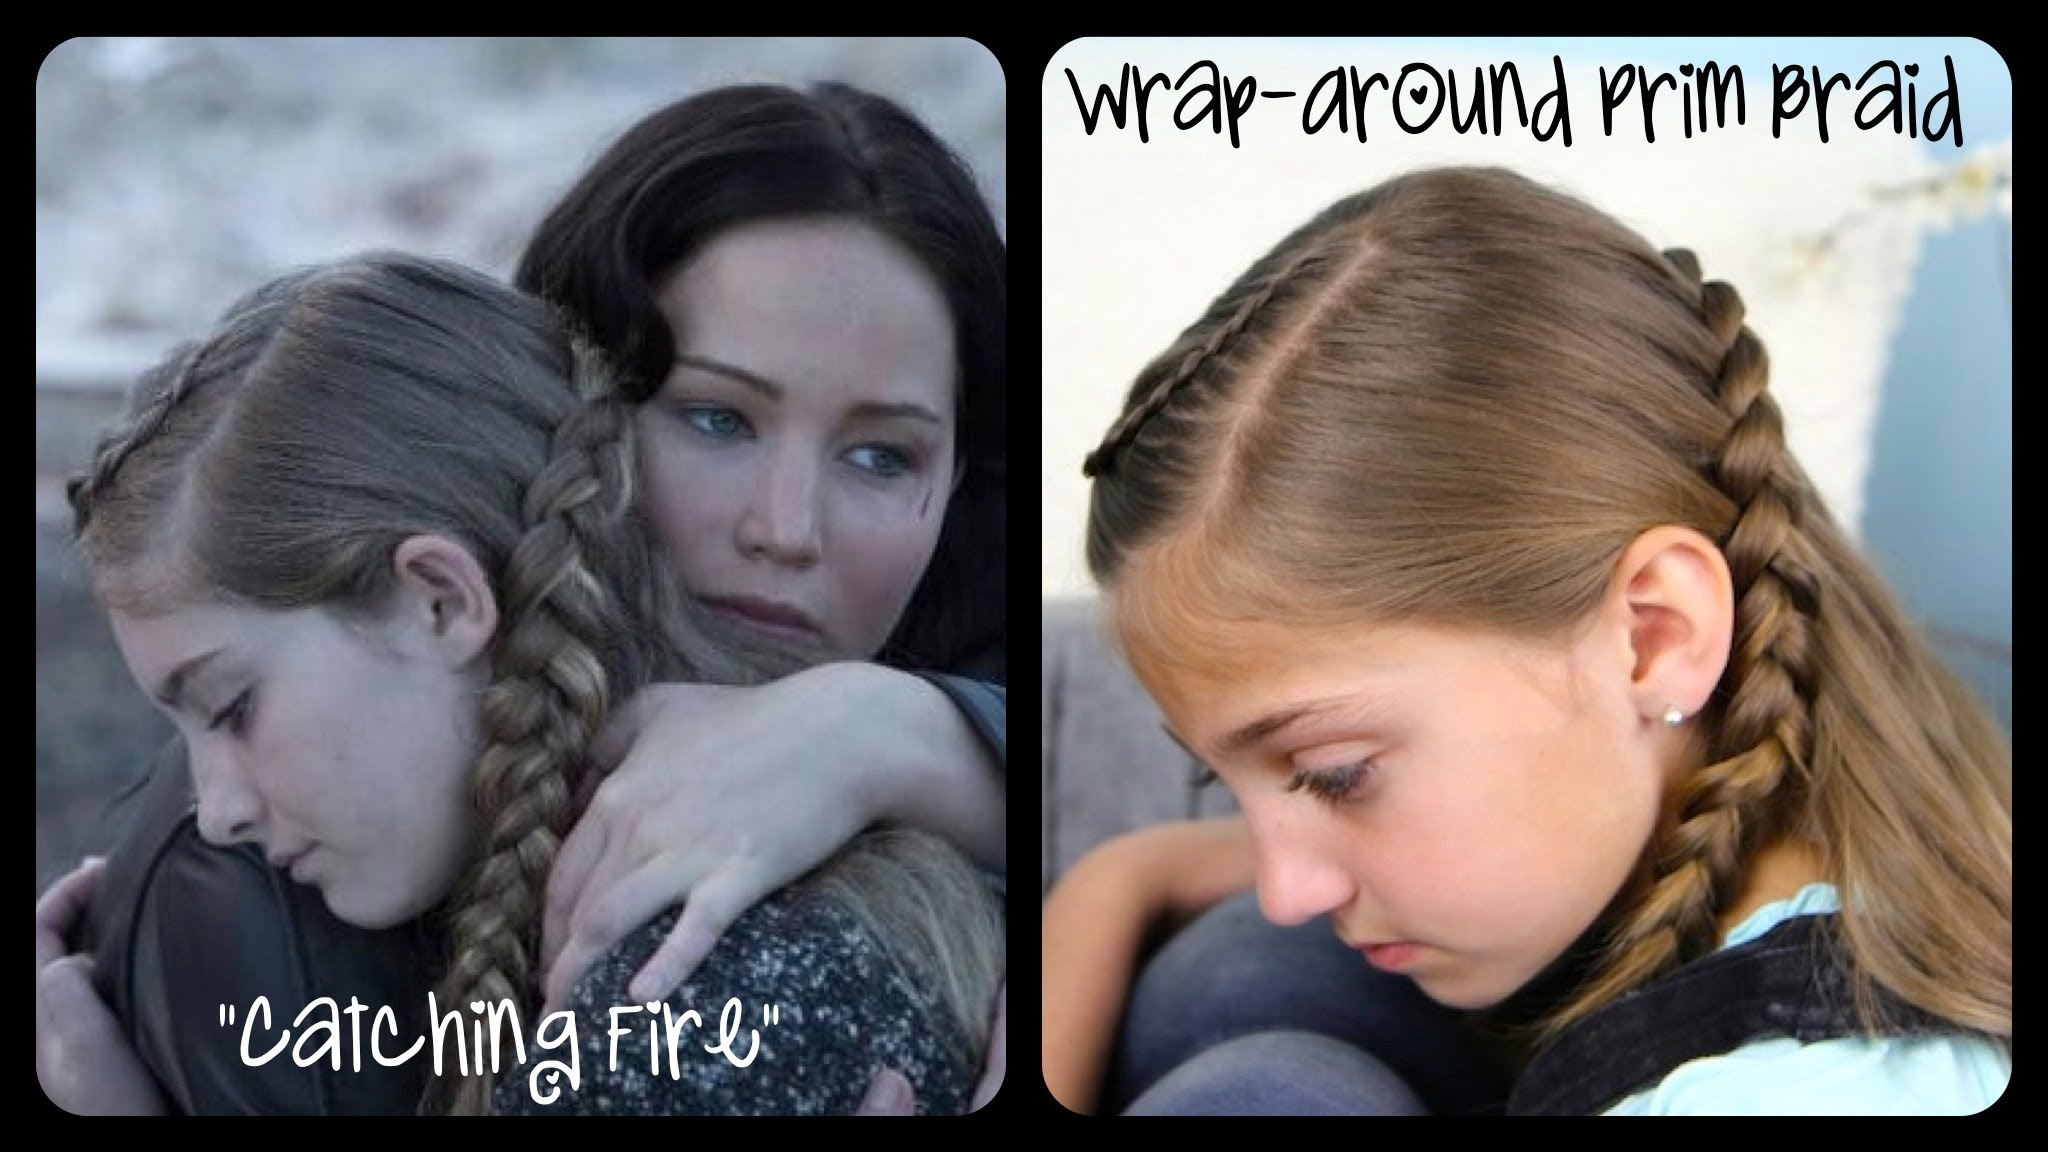 If you are like me and LOVE Hunger Games, here are the Prim's Braids on the films